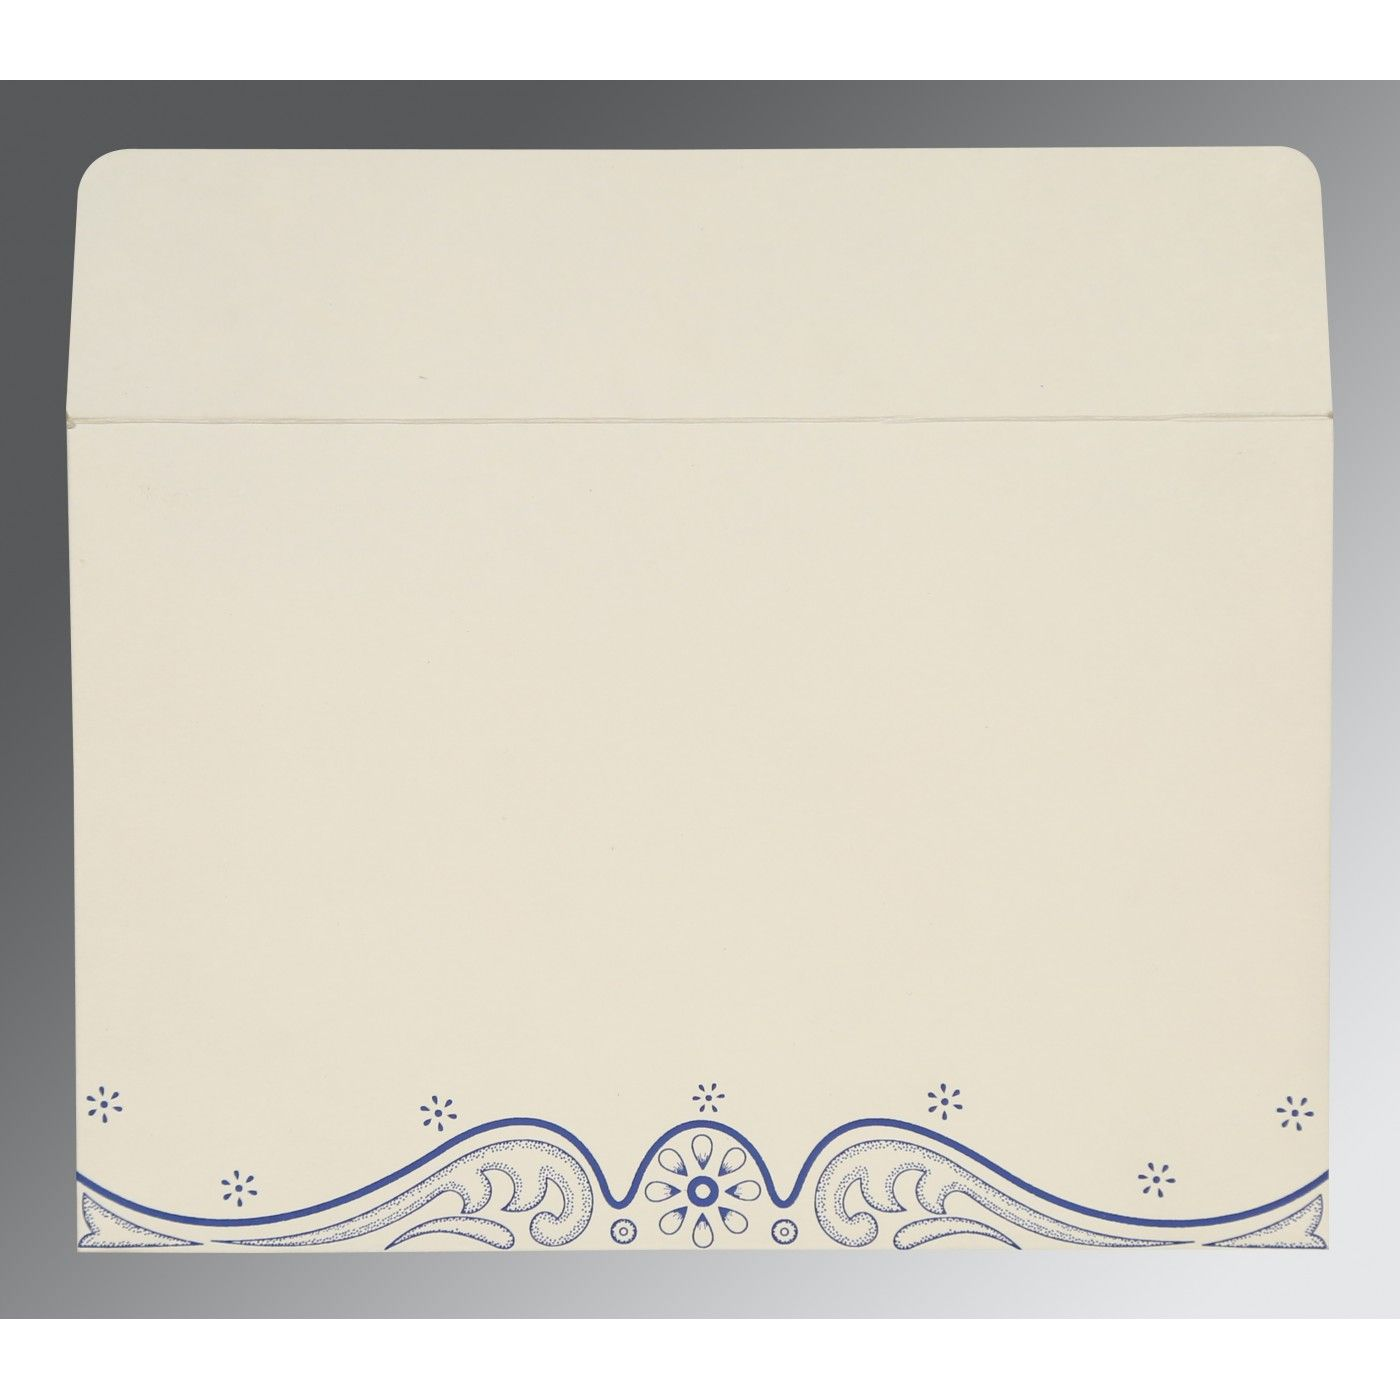 COBALT BLUE MATTE EMBOSSED WEDDING INVITATION : CW-8221C - IndianWeddingCards